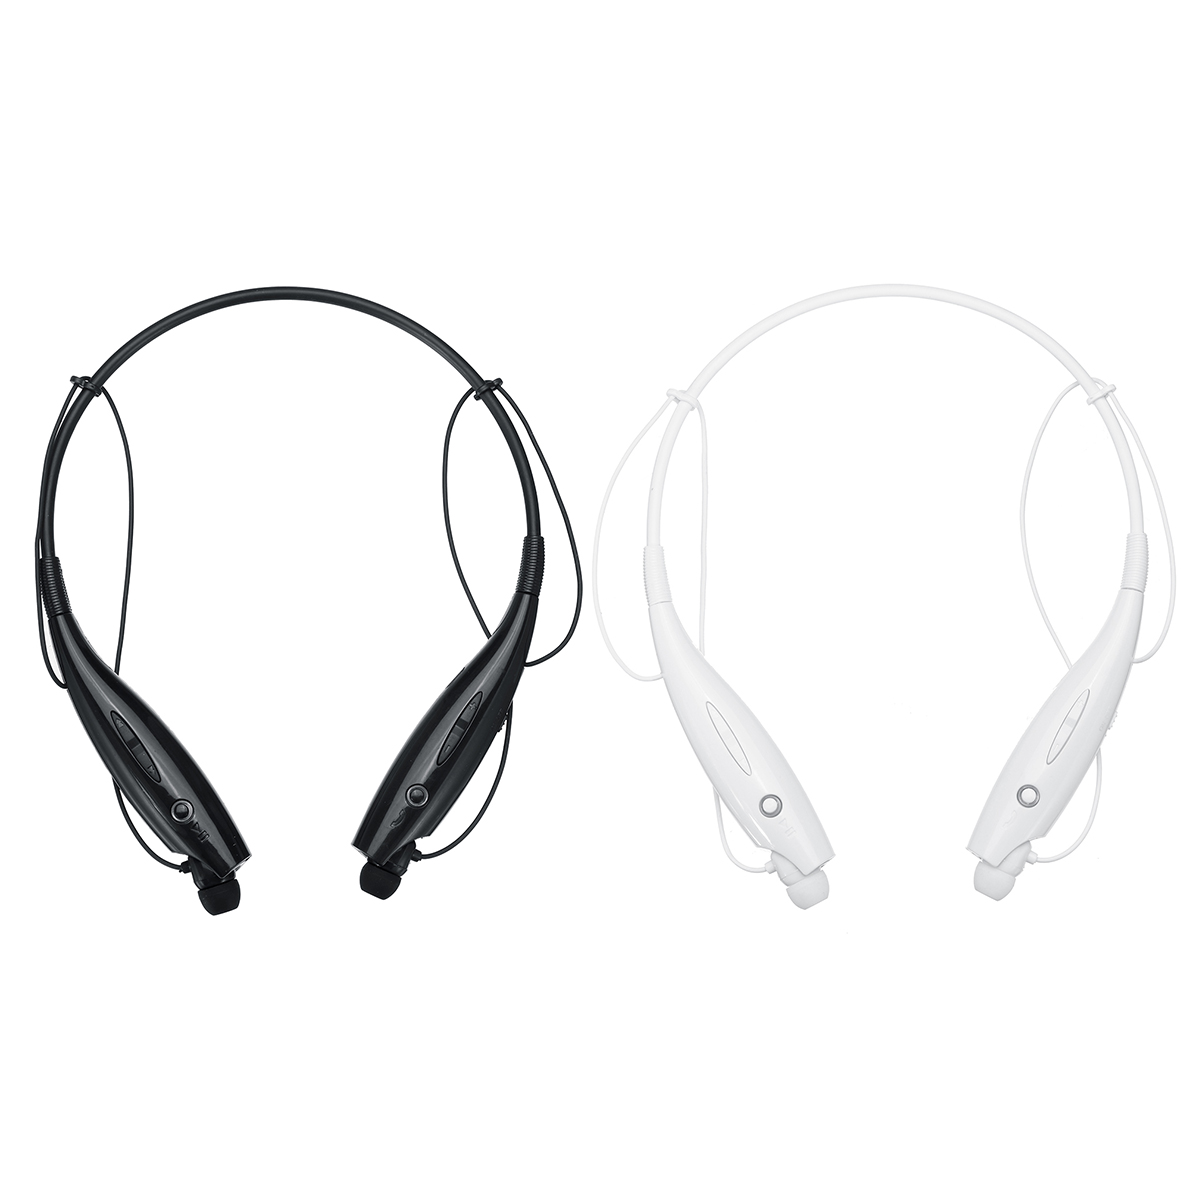 HBS730 Sports Stereo Bluetooth Headset V4.2 Wireless Neckband Bluetooth Mobiles Phone  Box Equipped With USB Charging Cable